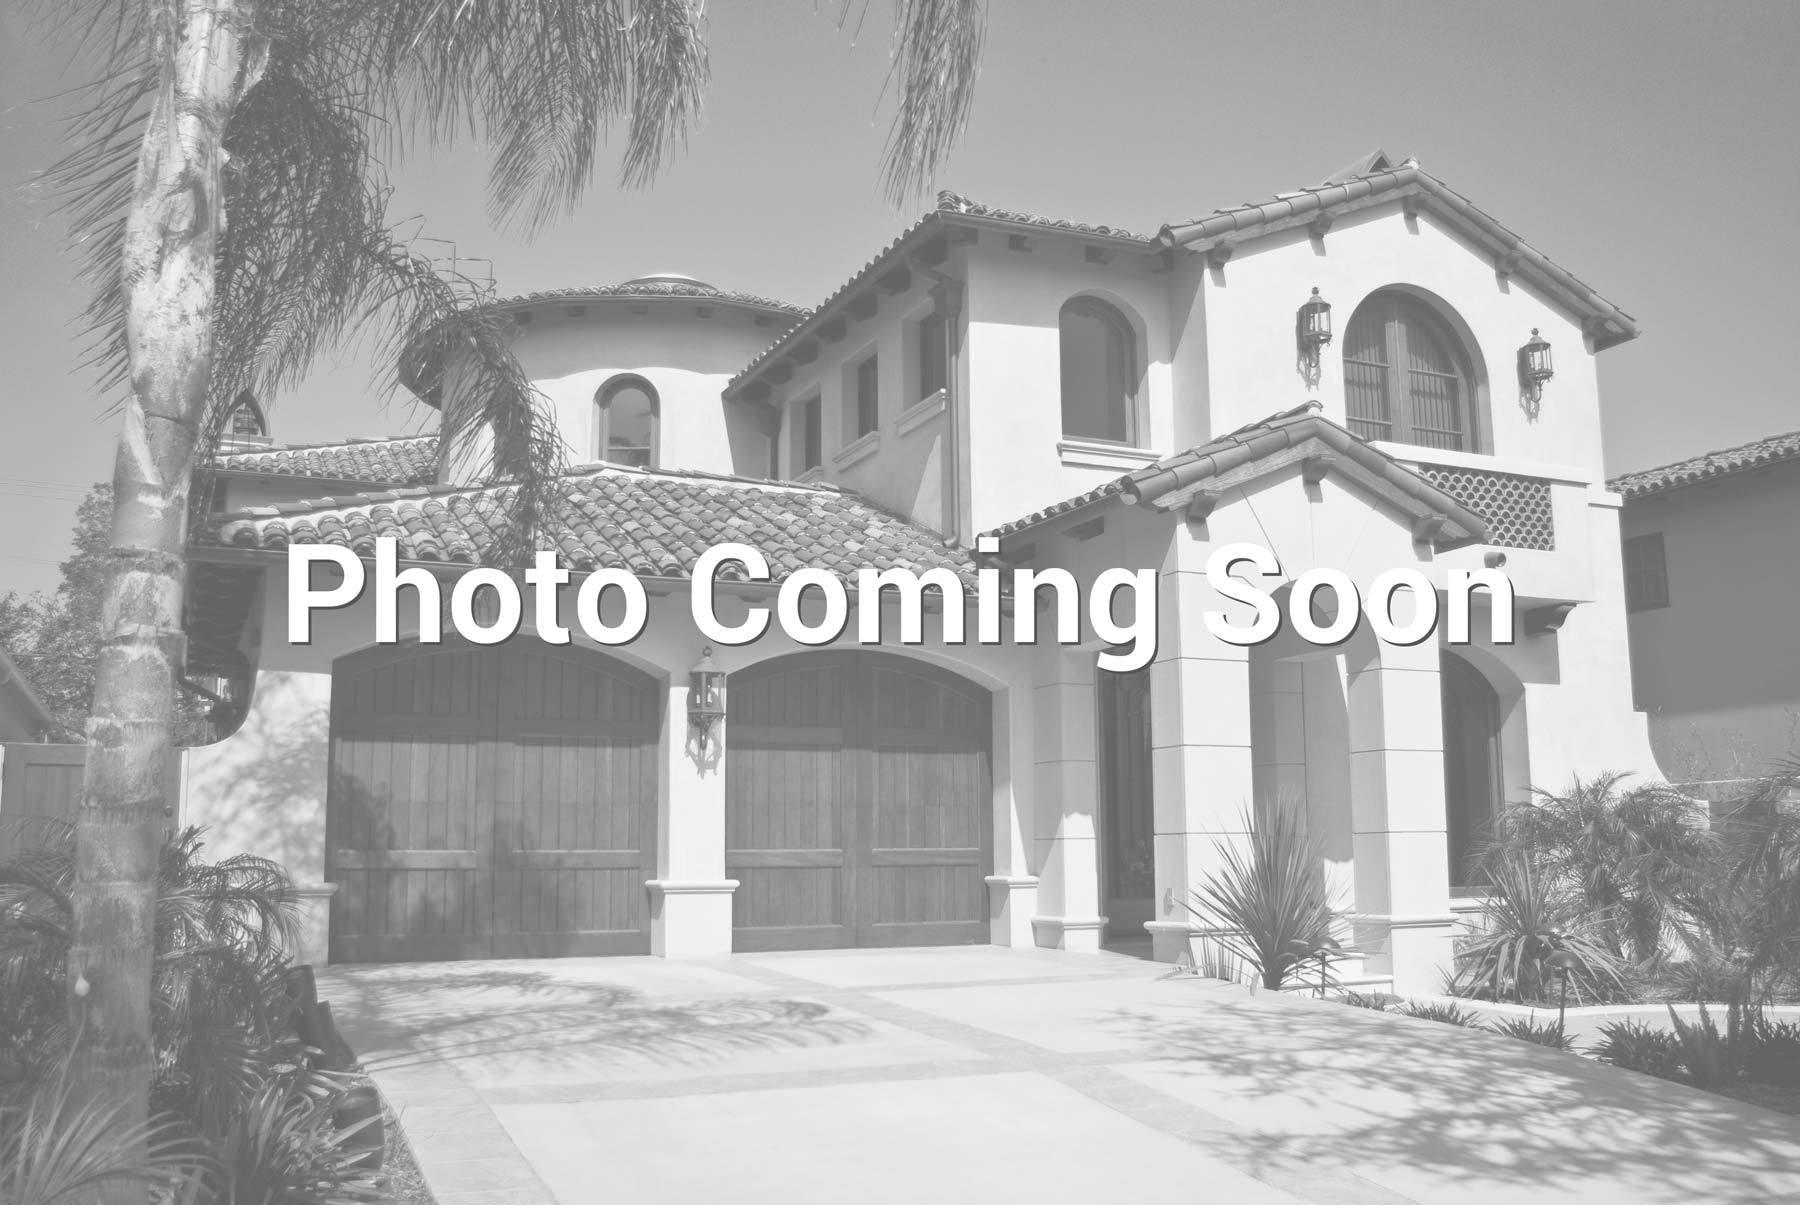 $205,000 - 3Br/2Ba - Home for Sale in Le Parc Patio Homes Lot 1-121 Par A Pvt Sts, Peoria